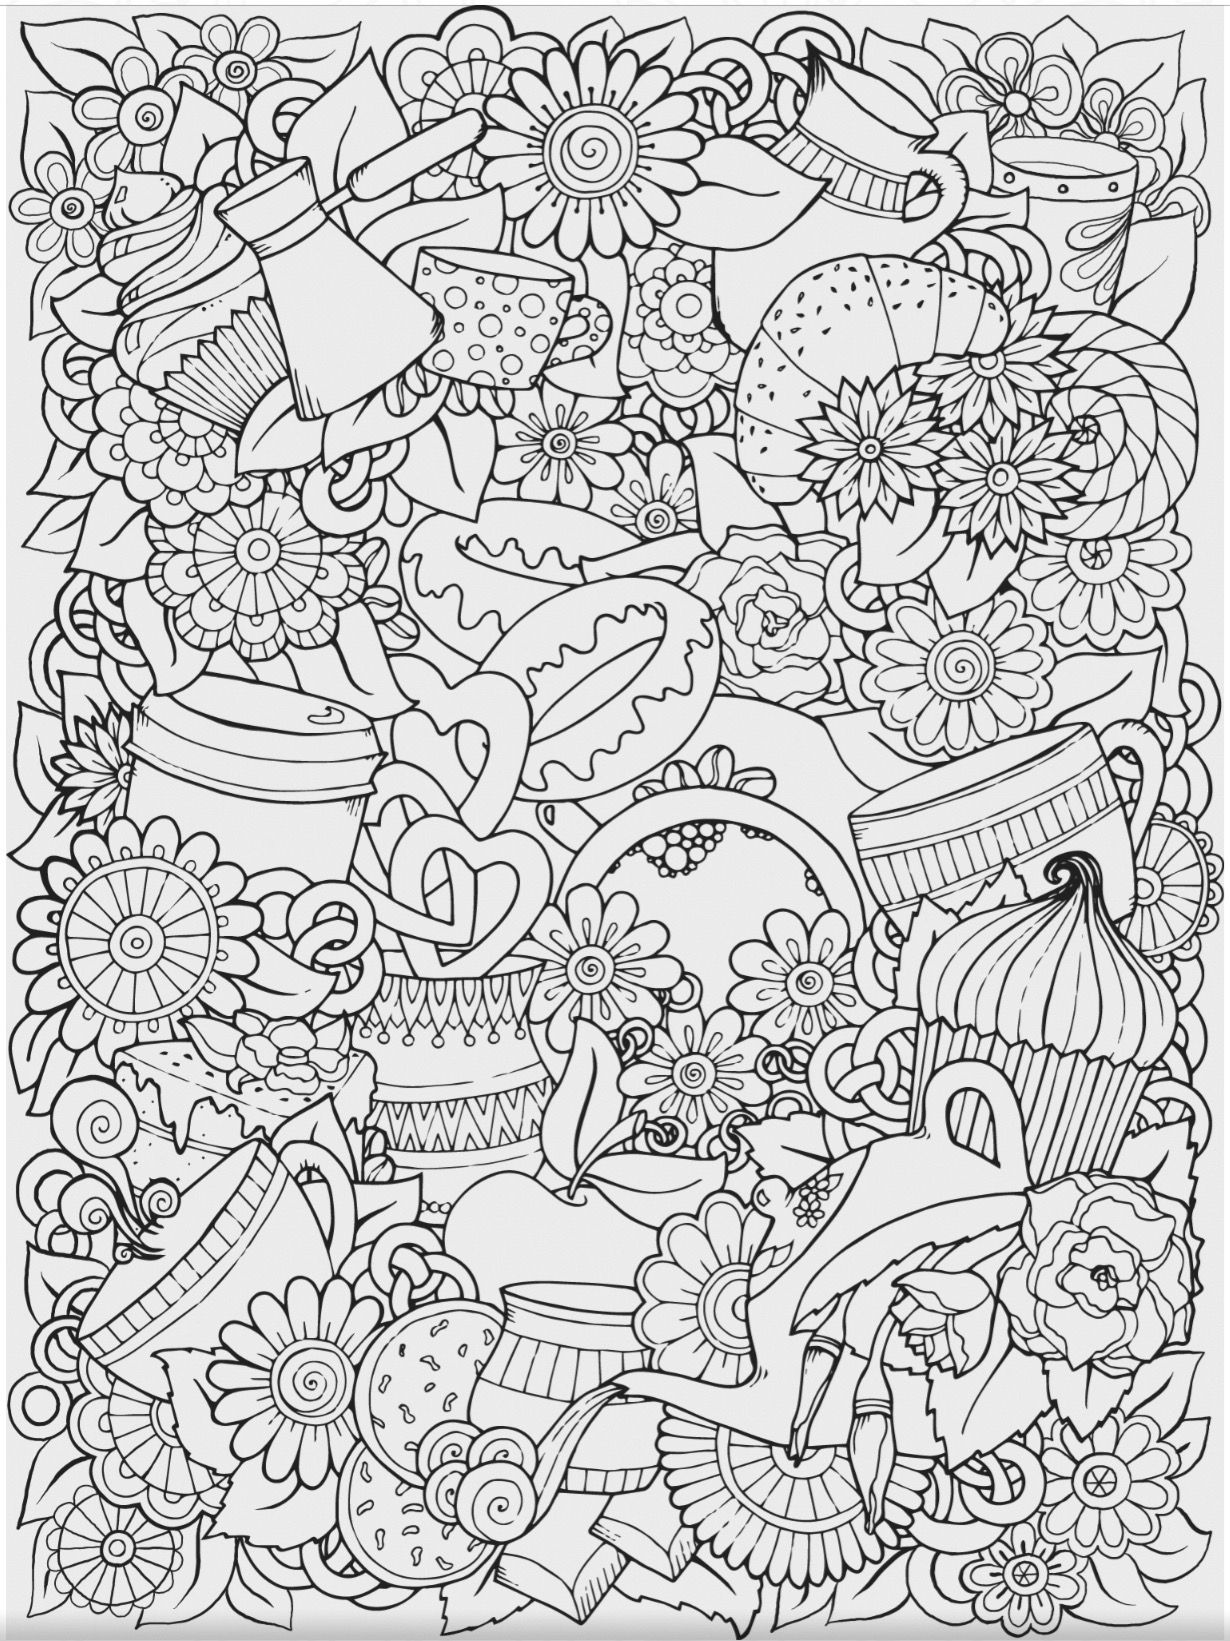 pincarol ratliff on coloring! x5  coloring pages